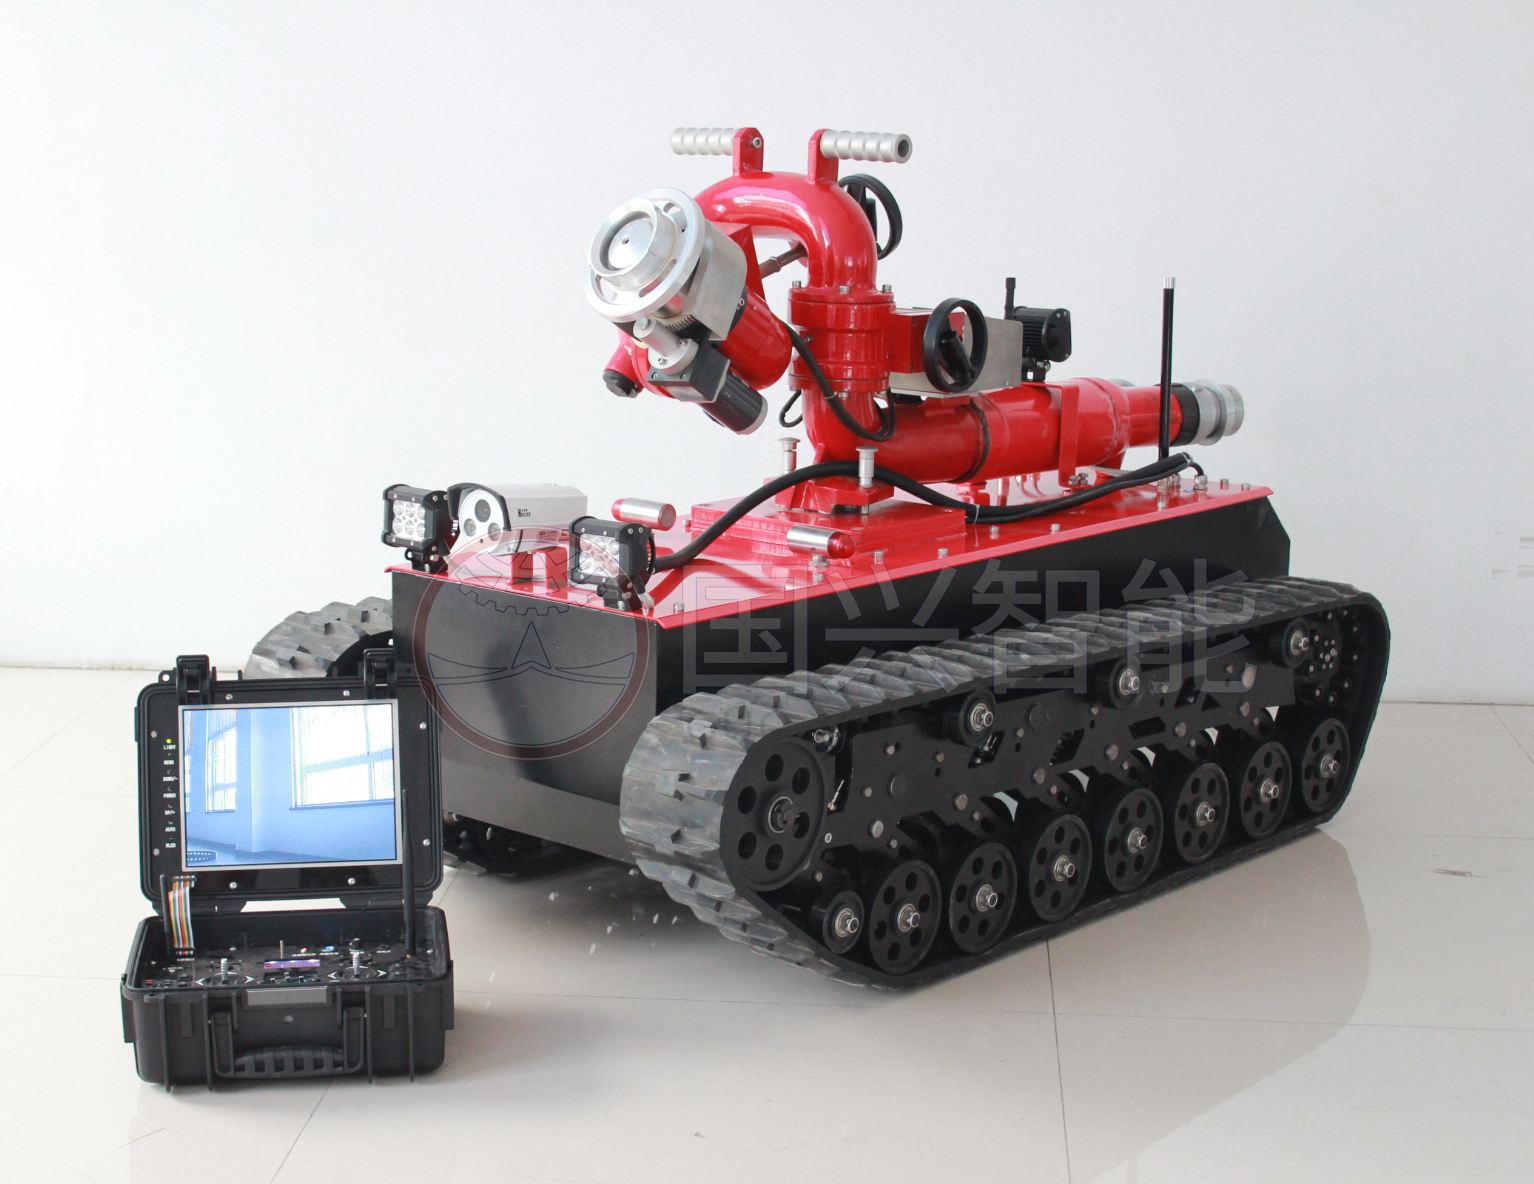 Guoxing FIrefighting Robot will be soon in Mexico Fire Brigade 4